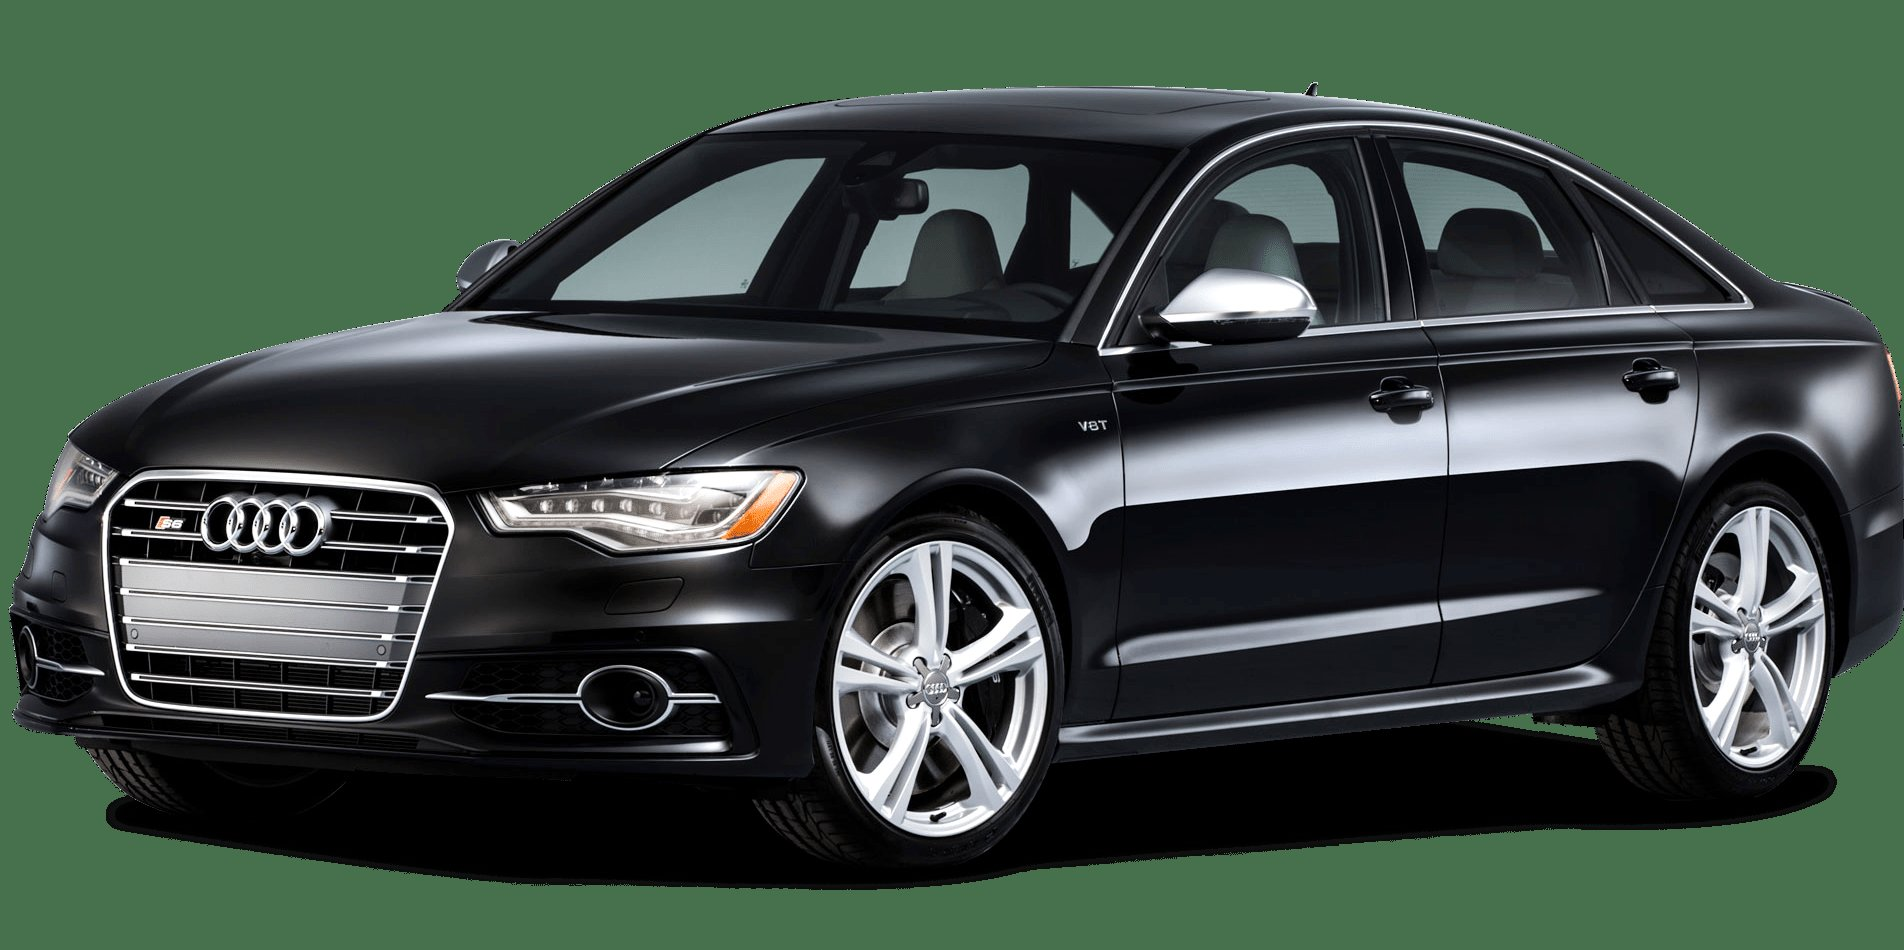 Latest Audi A4 Car Png Image Pngpix Free Download